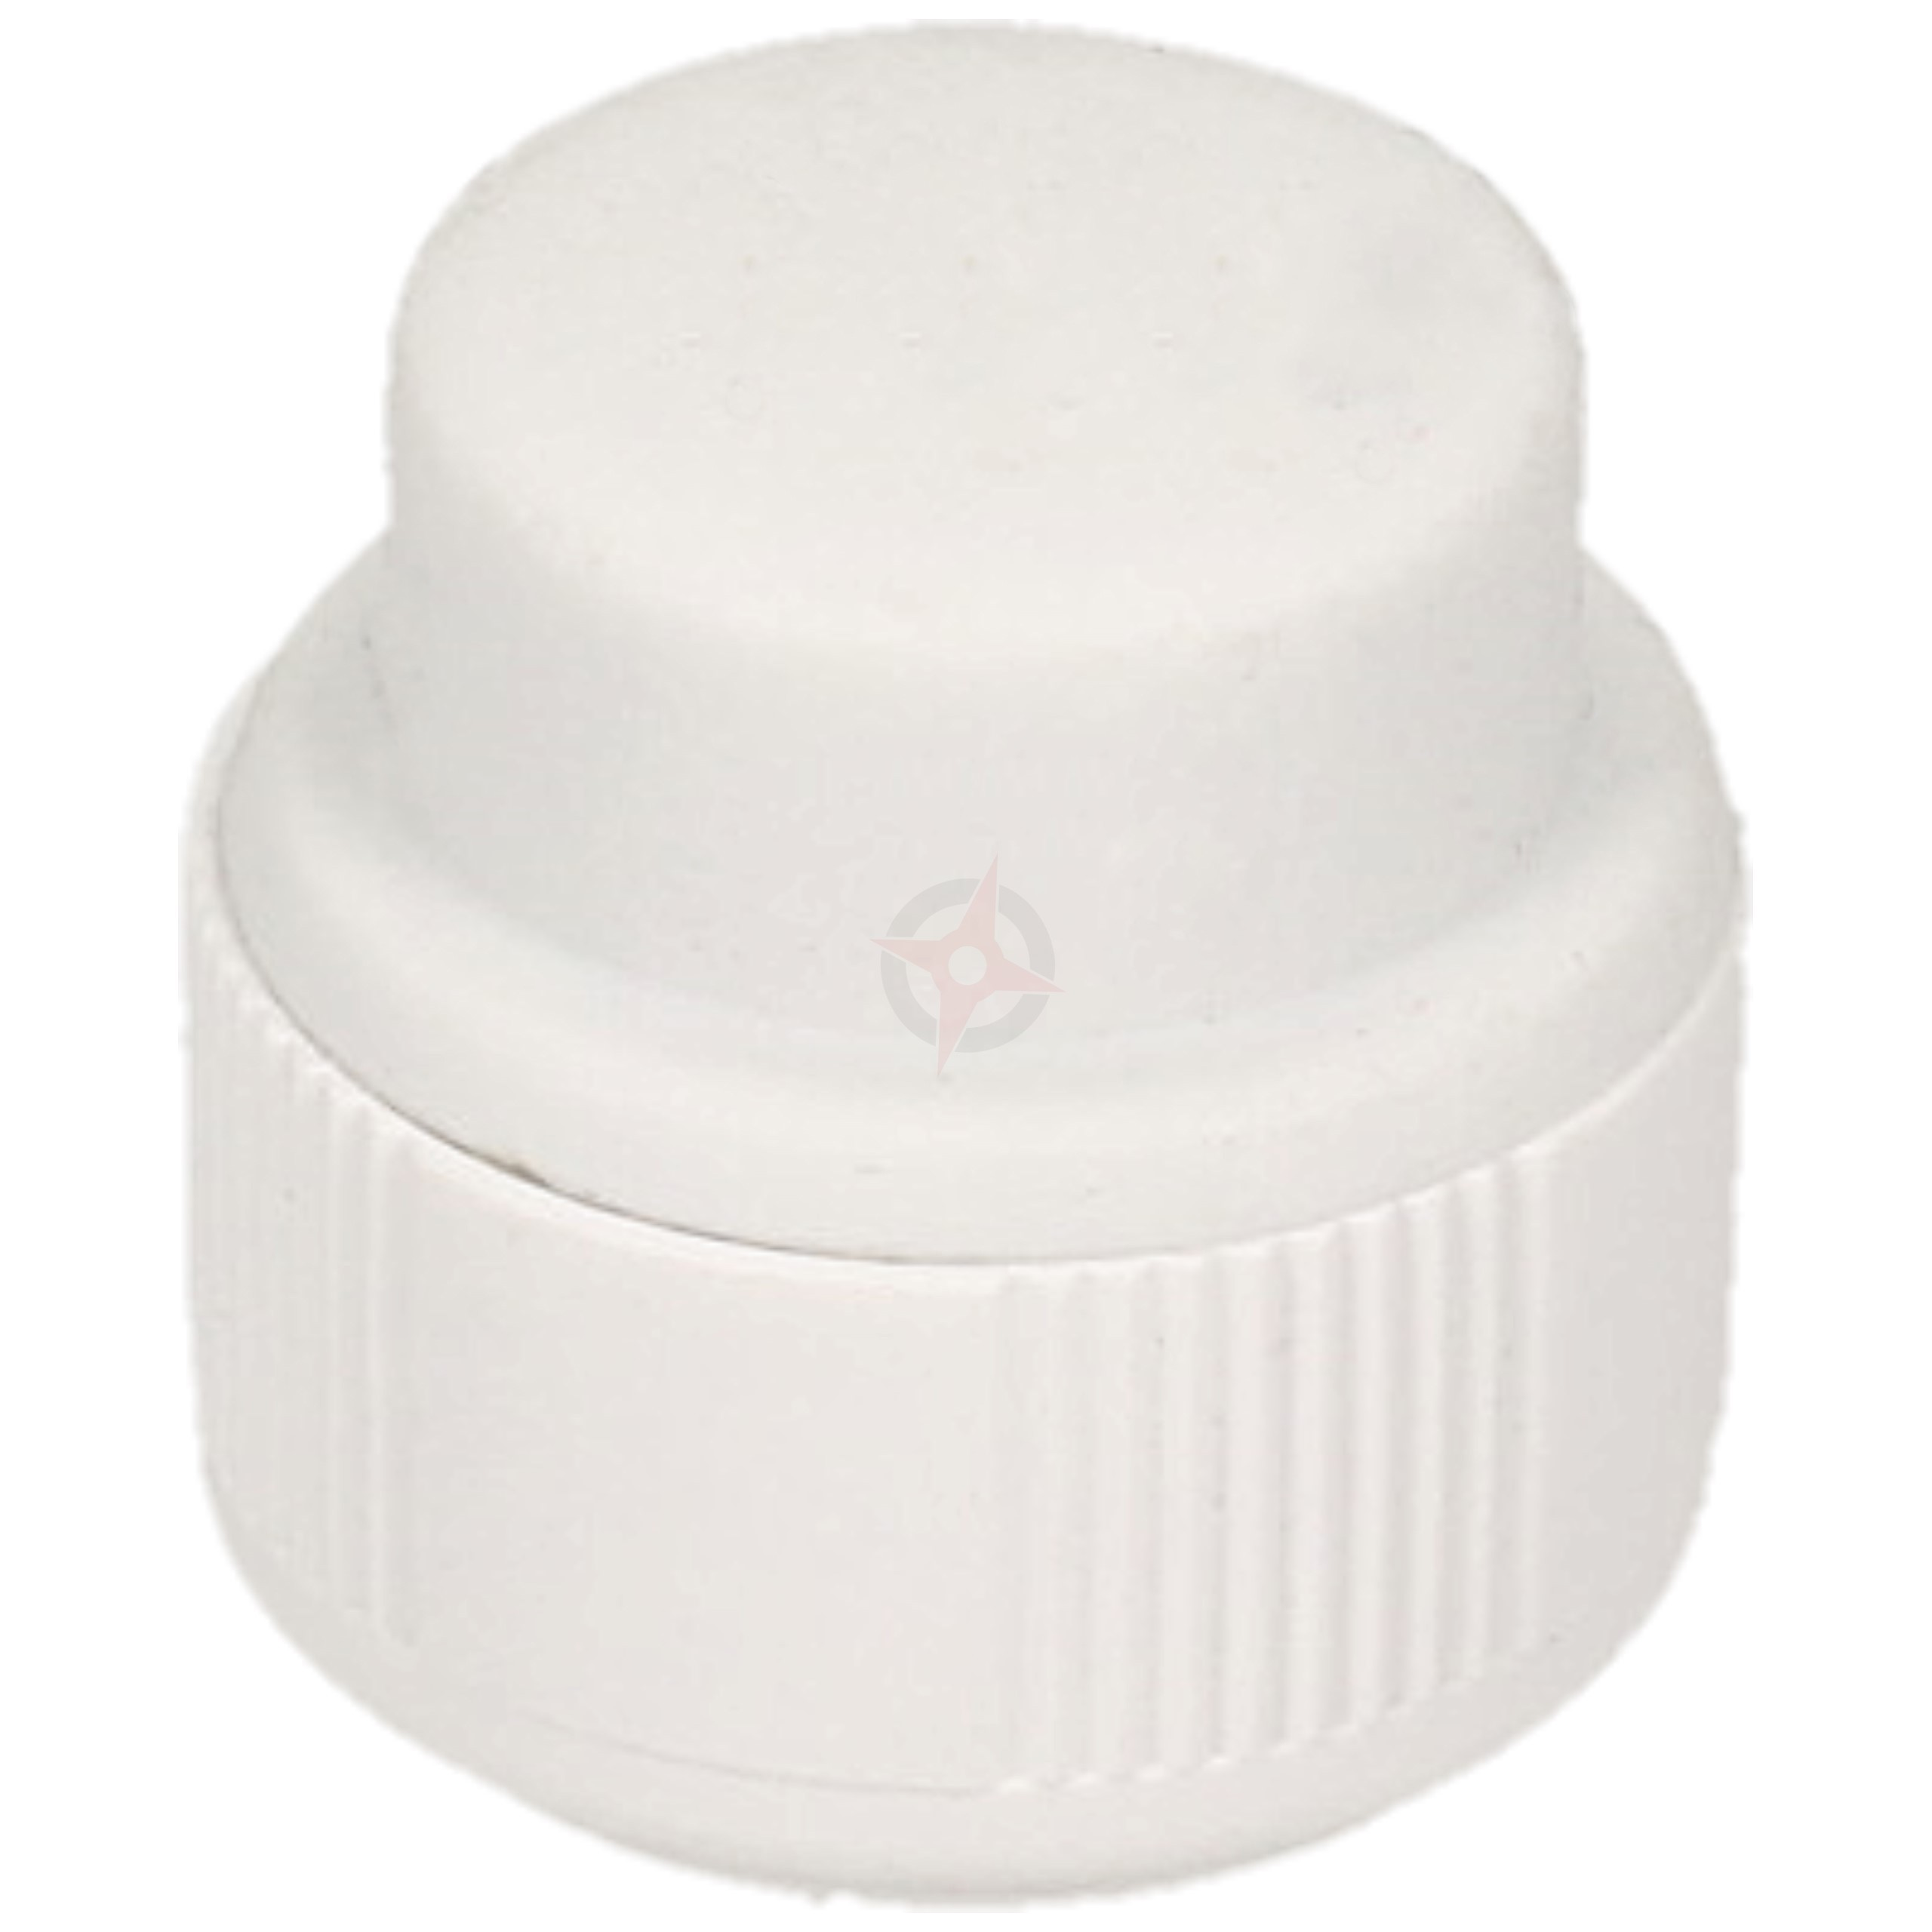 Whitespeed Push Fit 15mm Stop End Cap